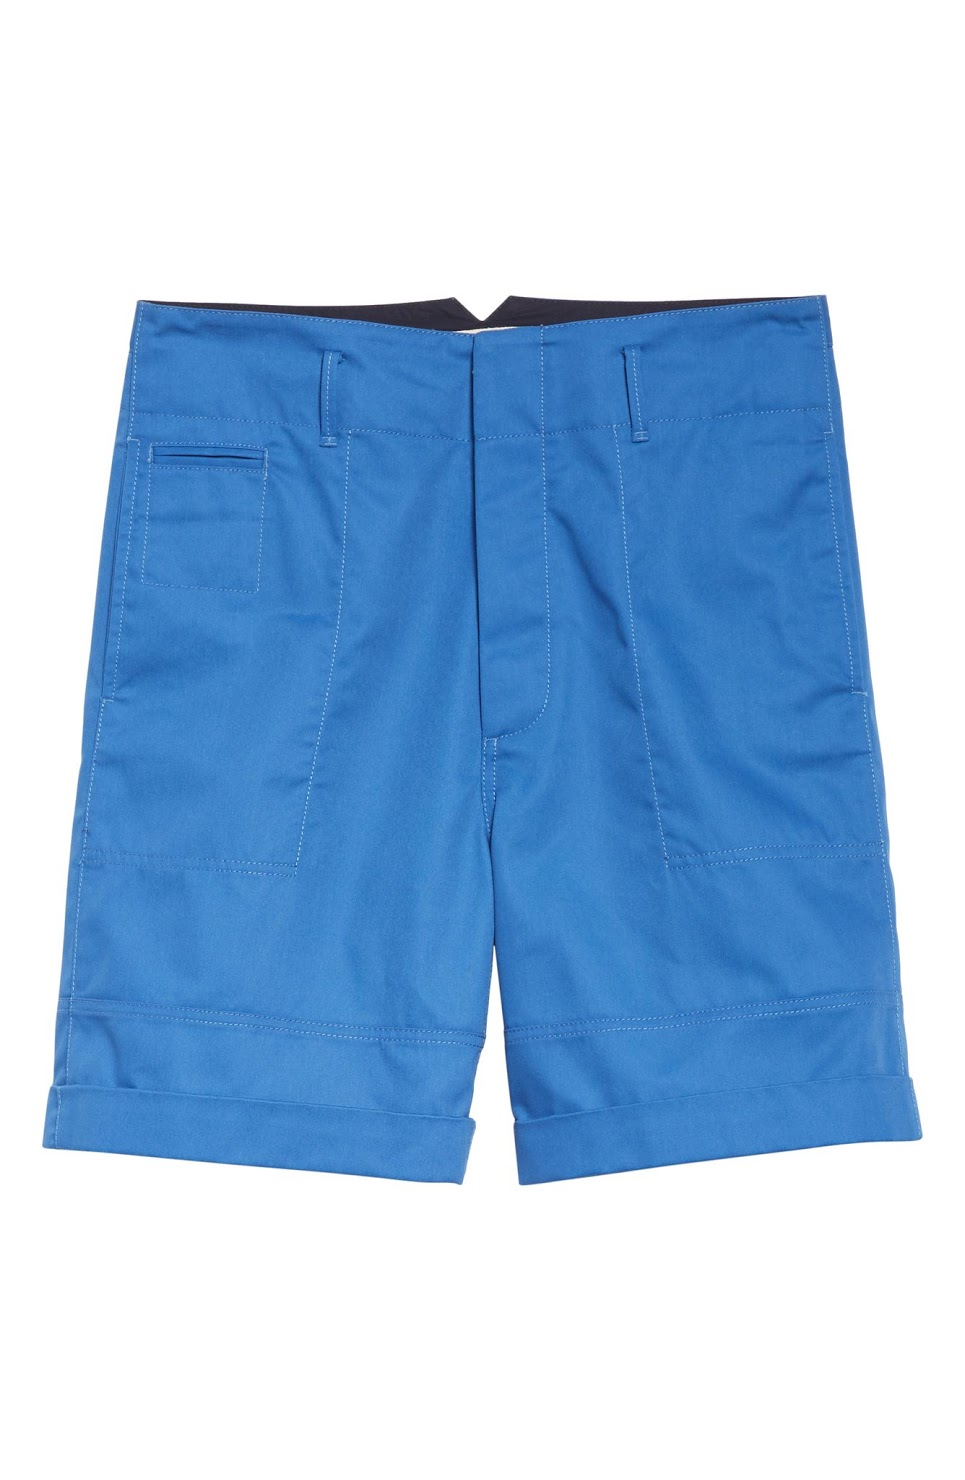 Marni_Workwear Shorts_Light Blue_$490.jpeg